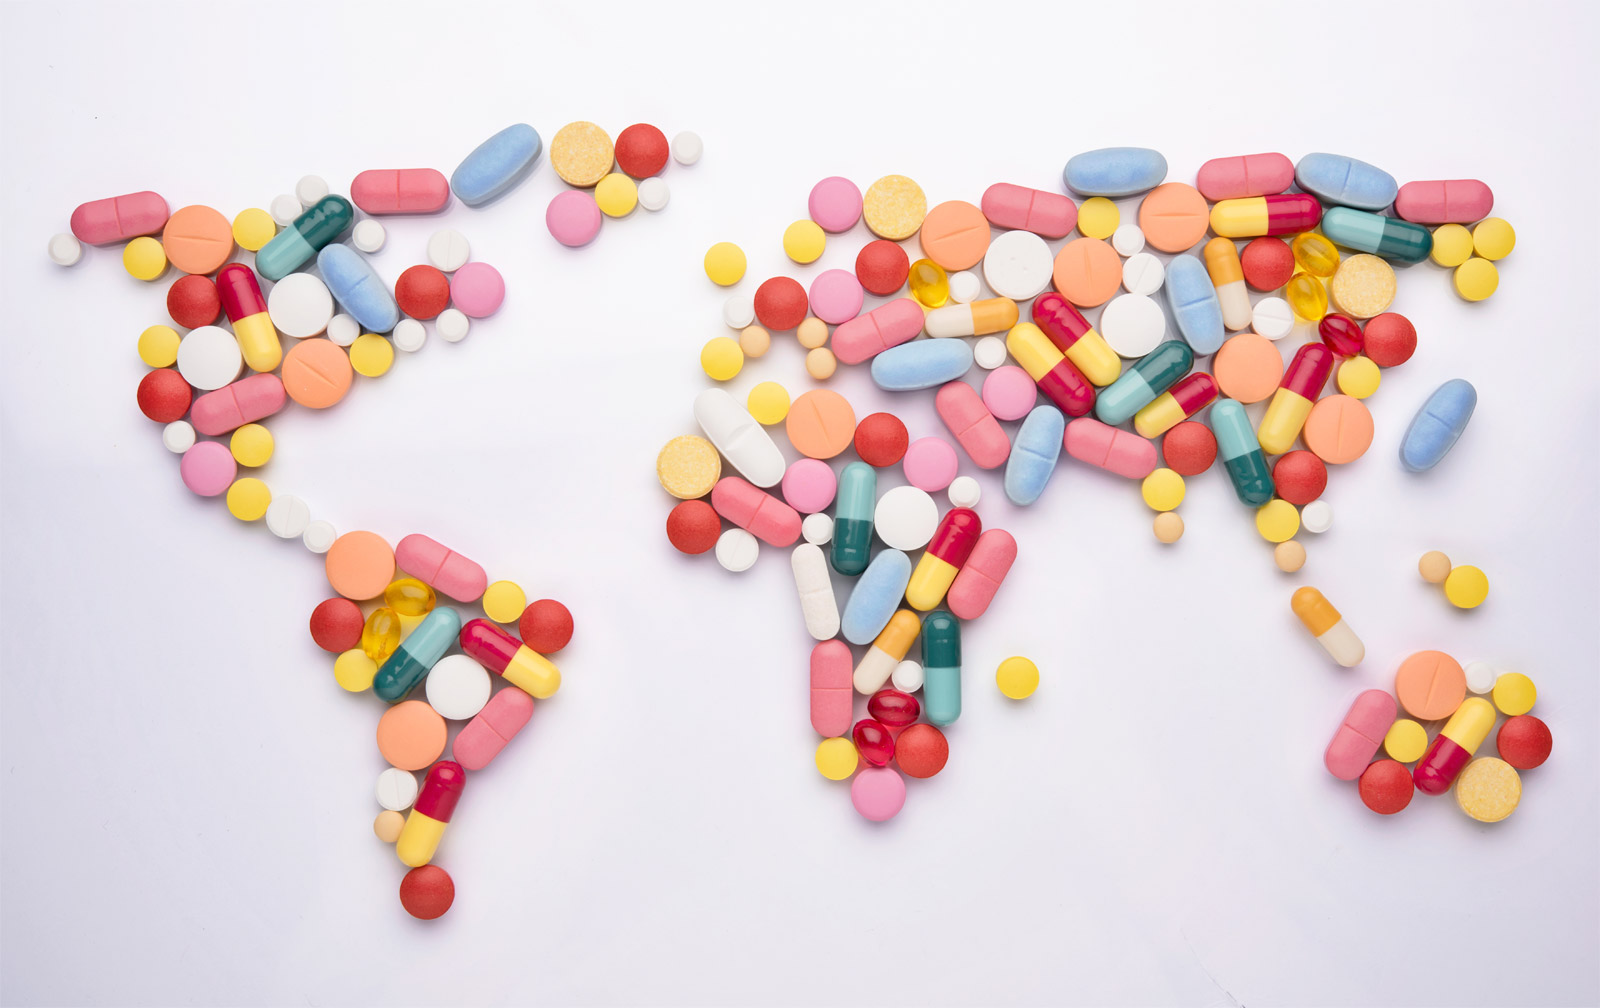 Pharmacovigilance  Market Insights, Trends & Growth Outlook